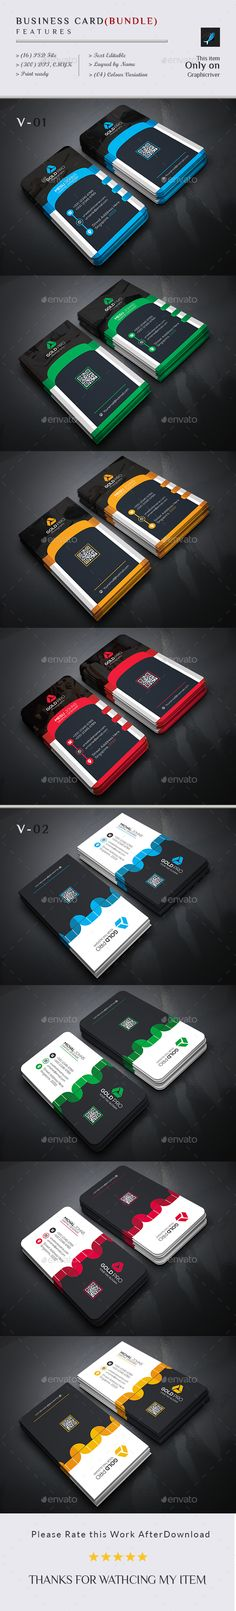 Creative Business Card Bundle (2 In 1) - Business Cards Print Templates Download here : https://graphicriver.net/item/creative-business-card-bundle-2-in-1/15507273?s_rank=146&ref=Al-fatih